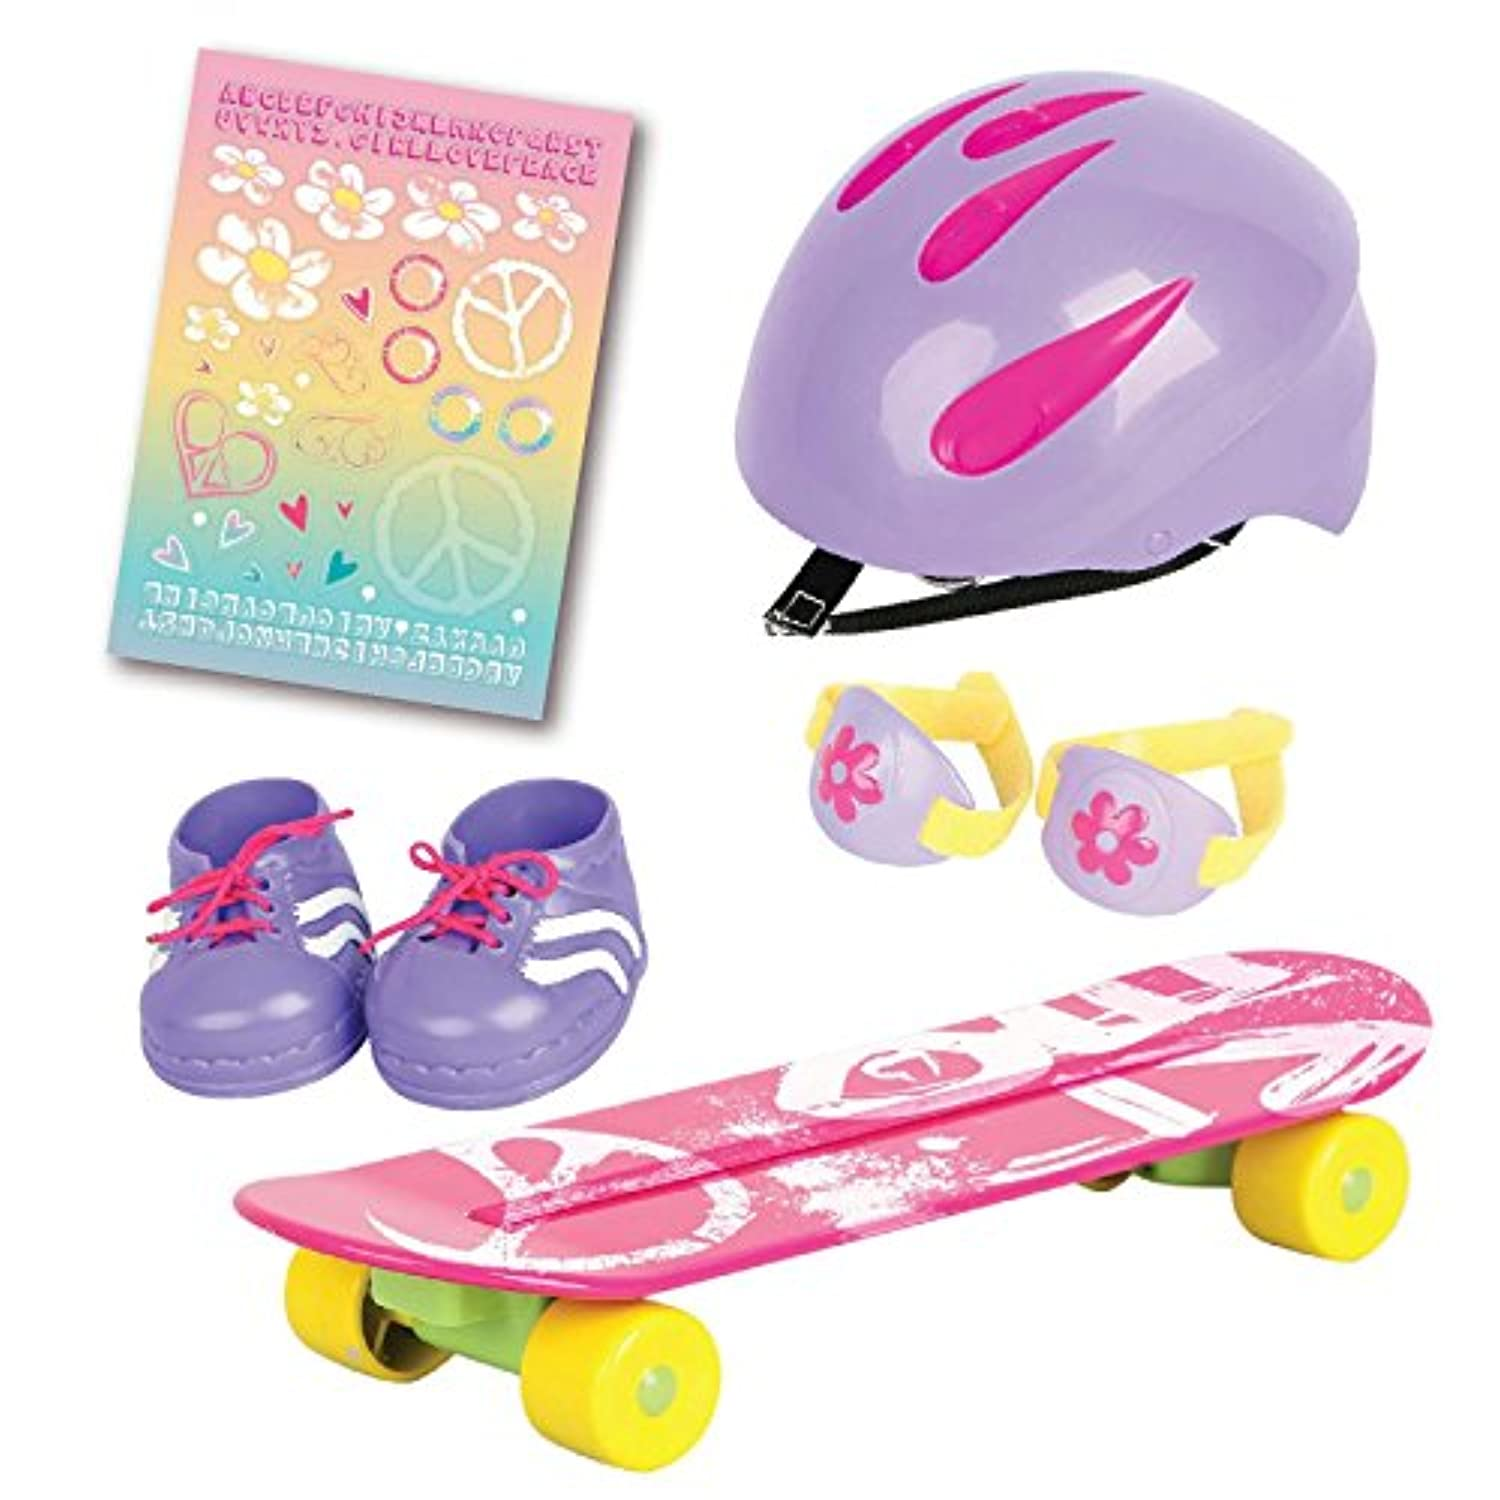 Beverly Hills Doll Collection Super Star HOT PINK Skateboard Set With Protective Gear Accessories, For 18 Inch Dolls